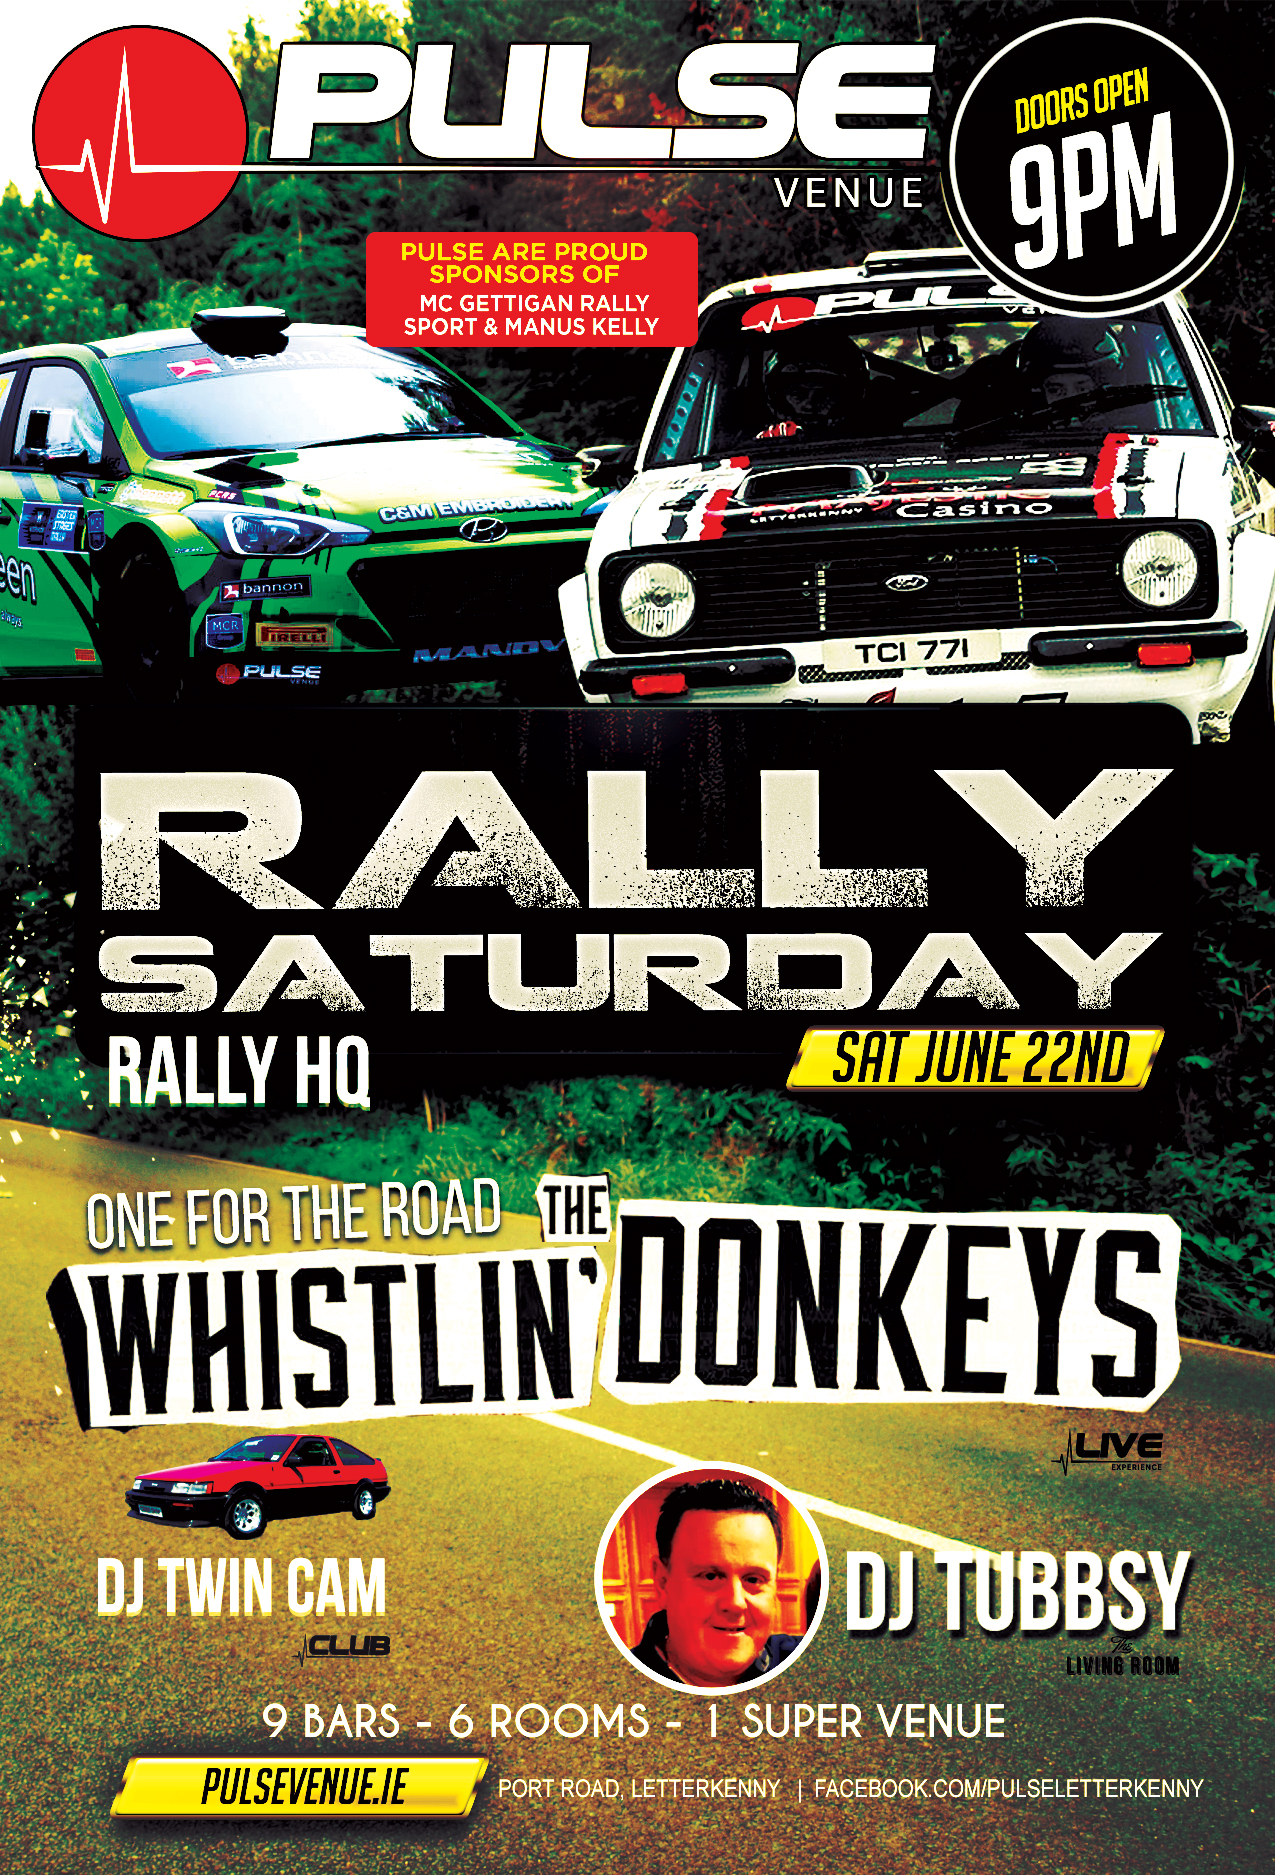 pulse-venuye---RALLY-SATURDAY---dj-twin-cam---tubbsy---whistlin-donkeys---JUNE-21-2019.jpg